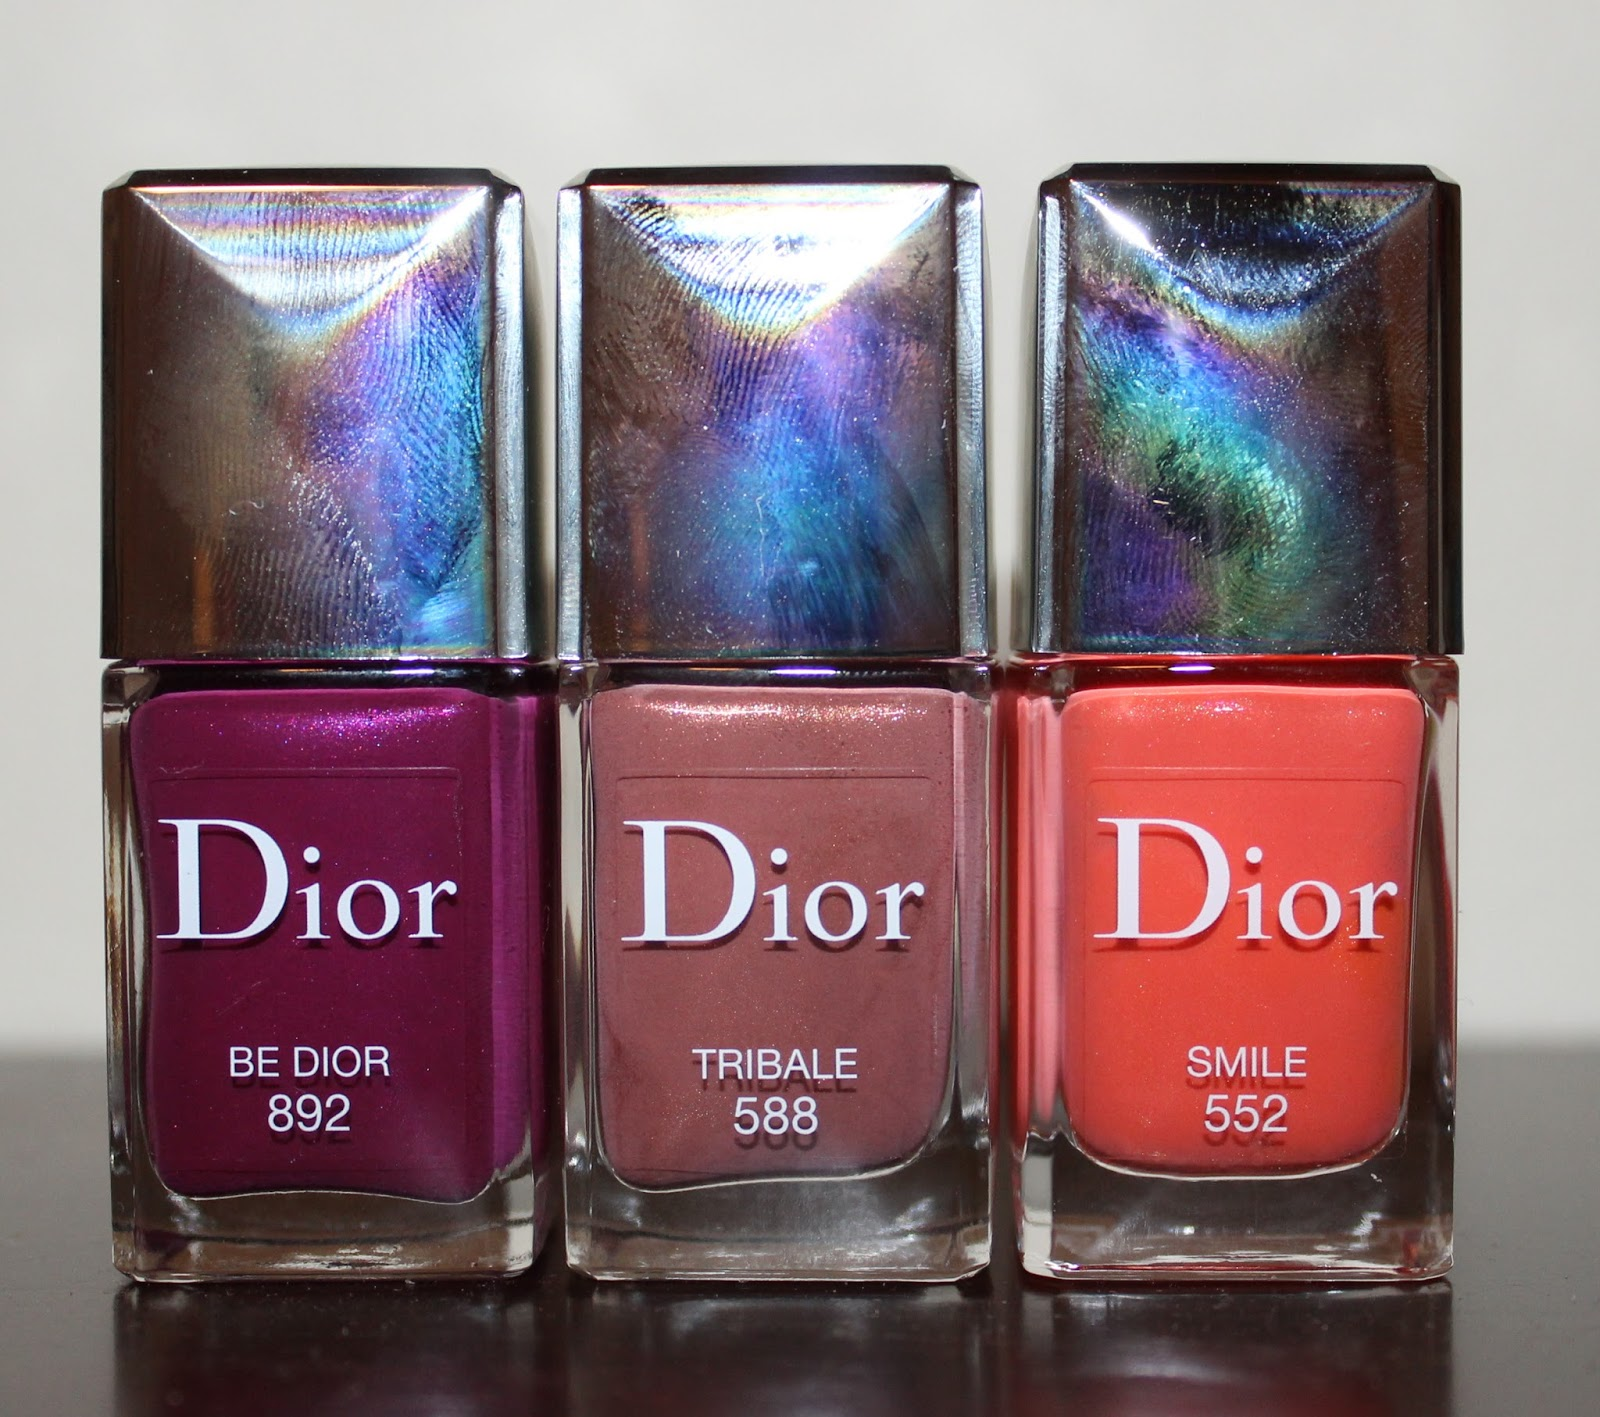 Beyond Blush: Dior Vernis in 552 Smile, 588 Tribale & 892 Be Dior